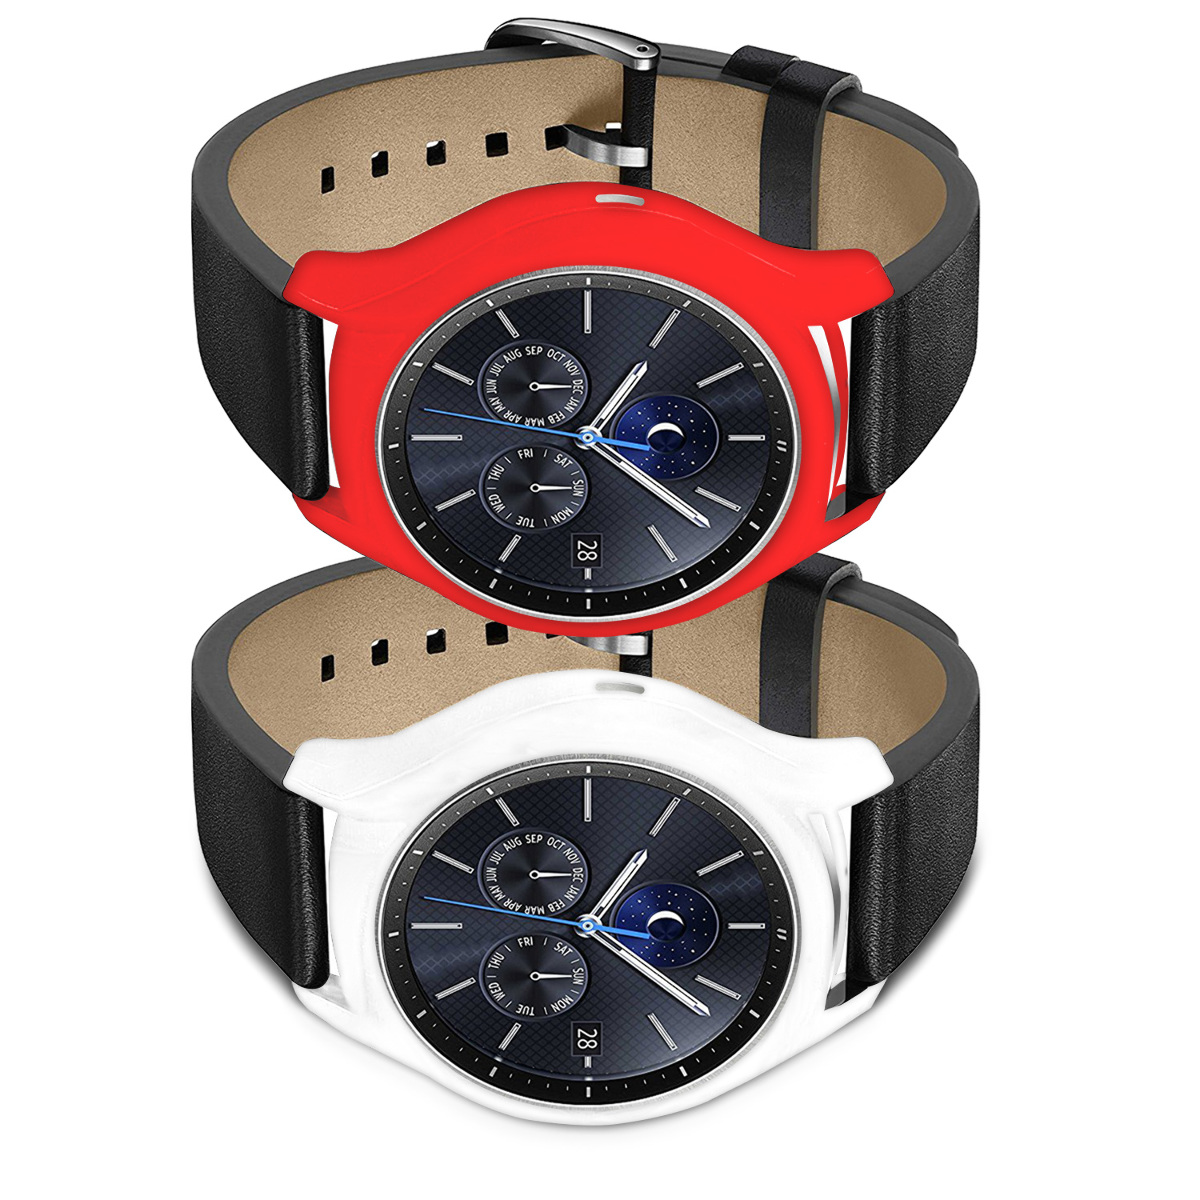 2x silikon armband schutz h lle f r samsung gear s3 classic fitnessband case ebay. Black Bedroom Furniture Sets. Home Design Ideas